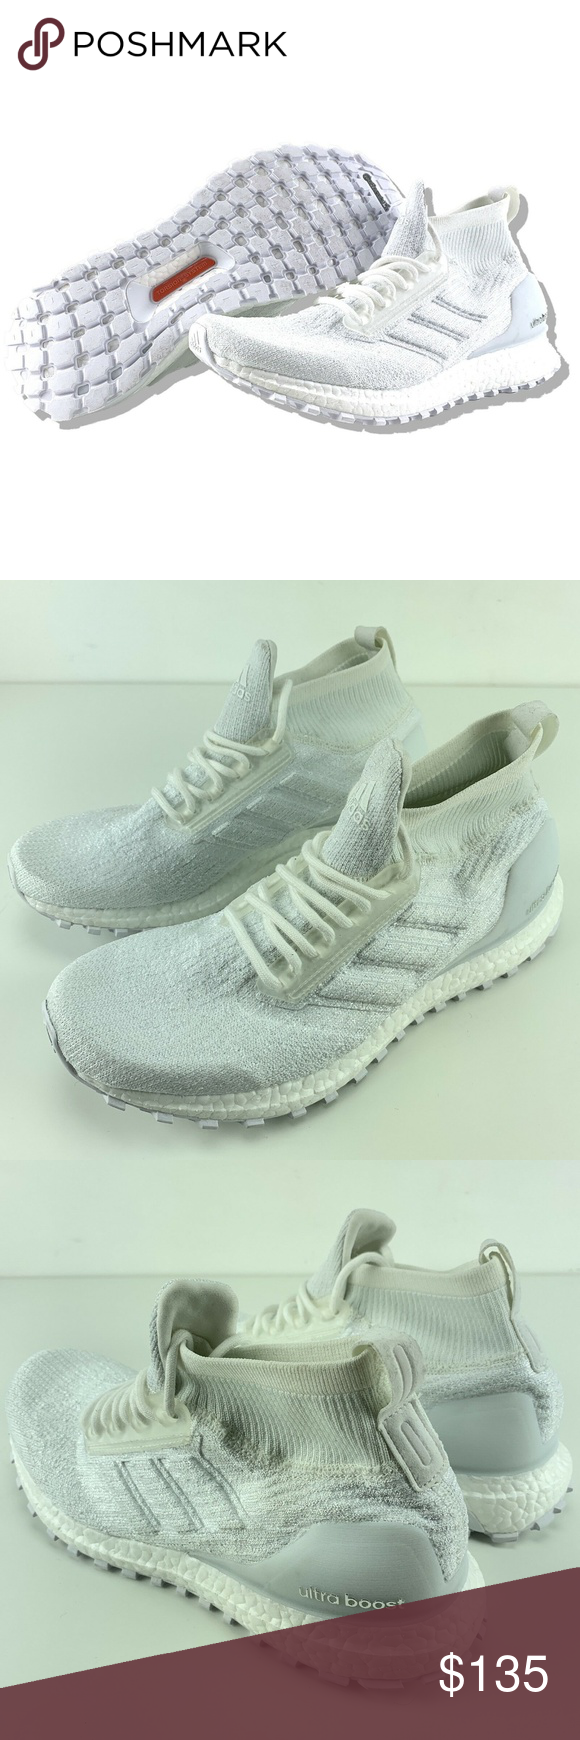 23ee38689ea26 Adidas Ultra Boost Triple White Adidas Ultra Boost Triple White Size 8.5  Mens All Terrain ATR Mid Running Shoes Brand New Shoes